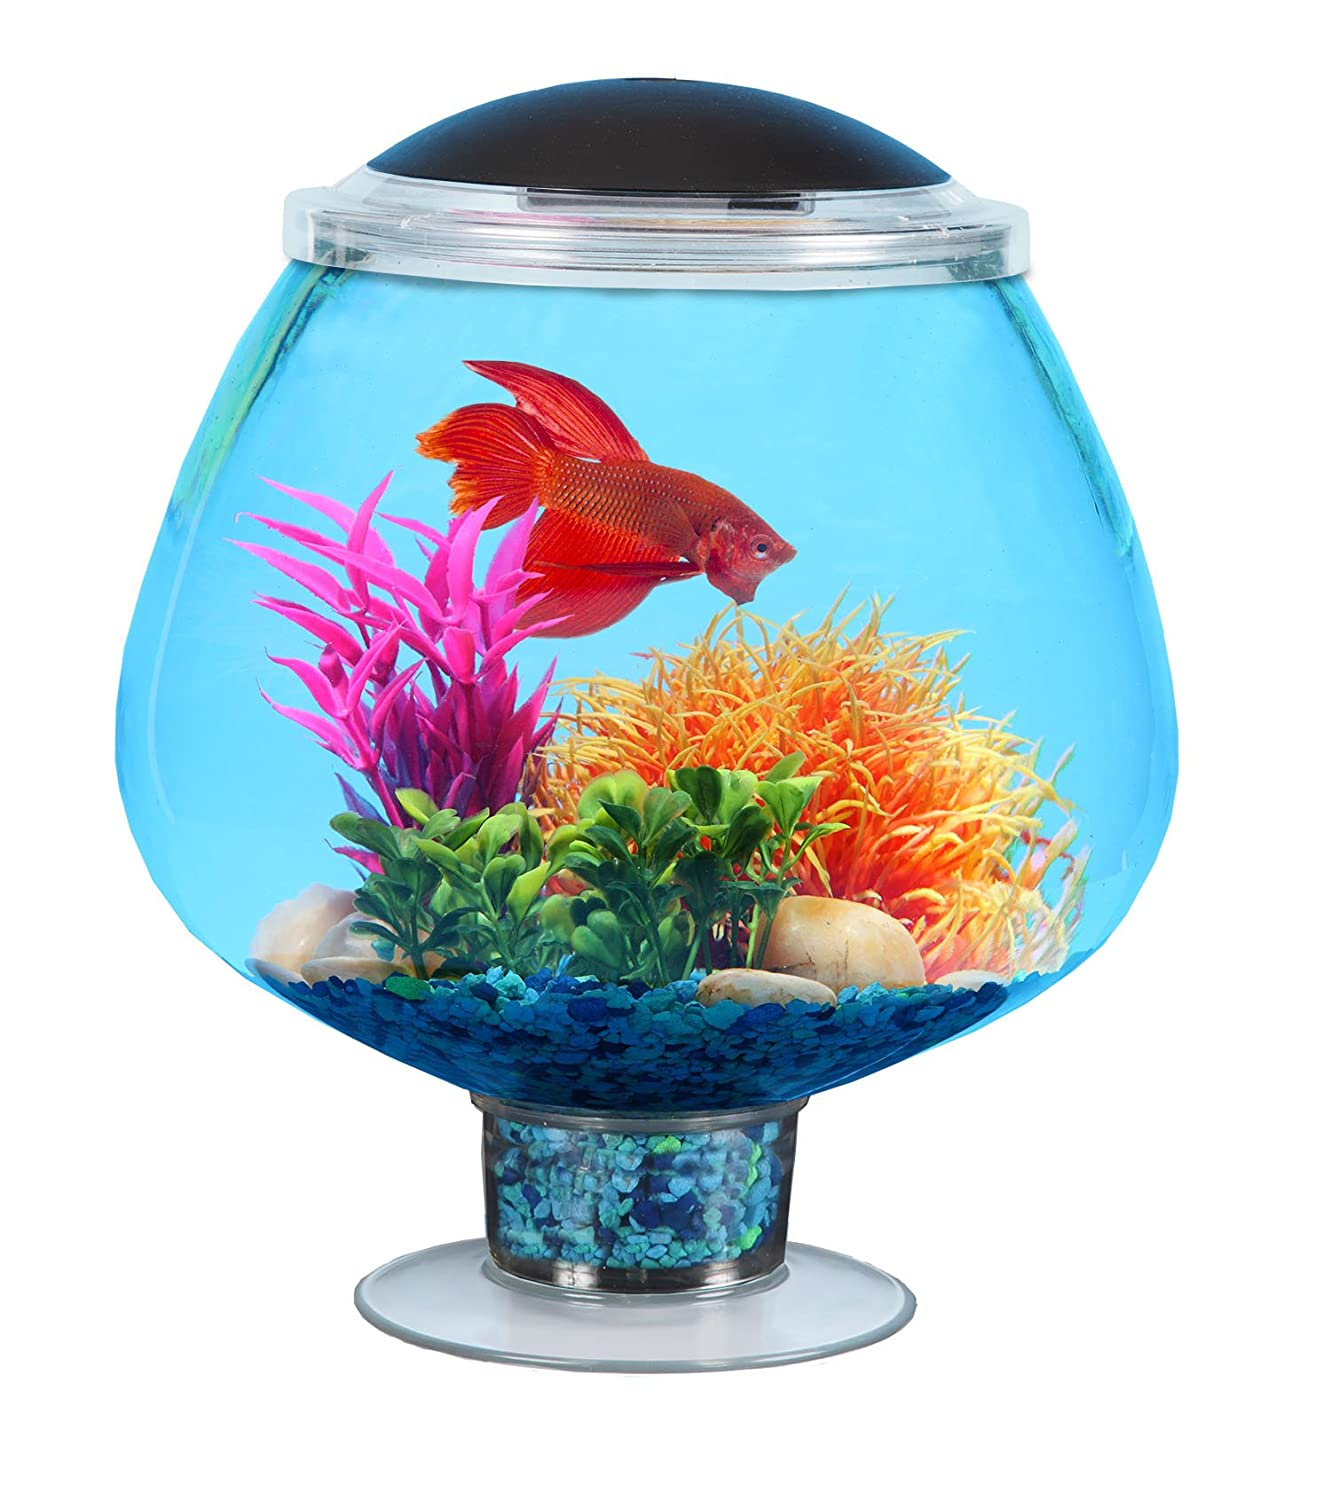 Kollercraft API Betta Kit Stemware Fish Tank, 1.7-Gallon